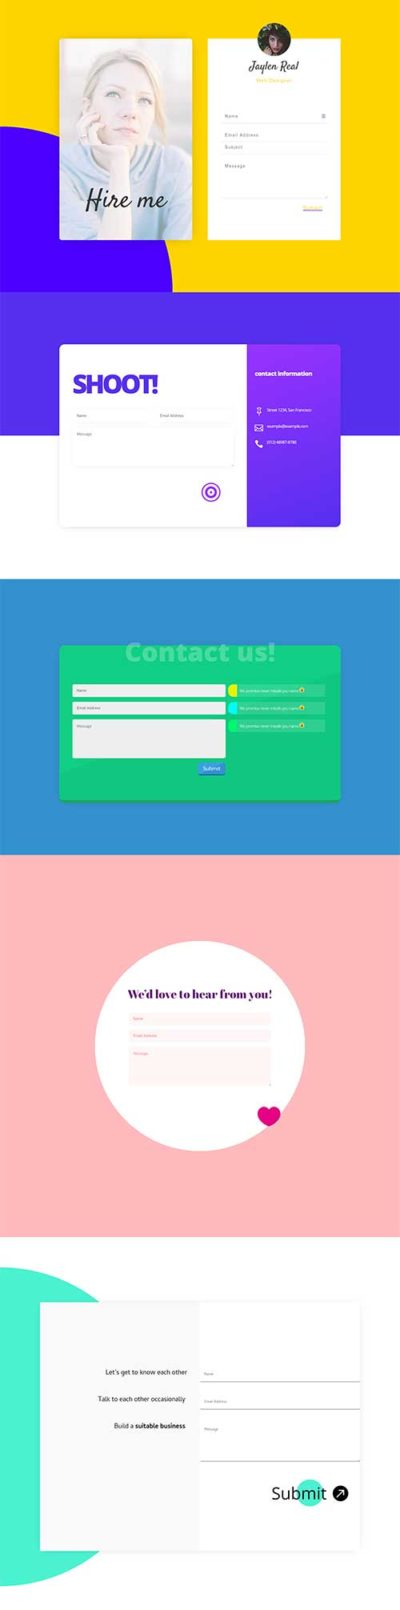 5 divi contact form modules